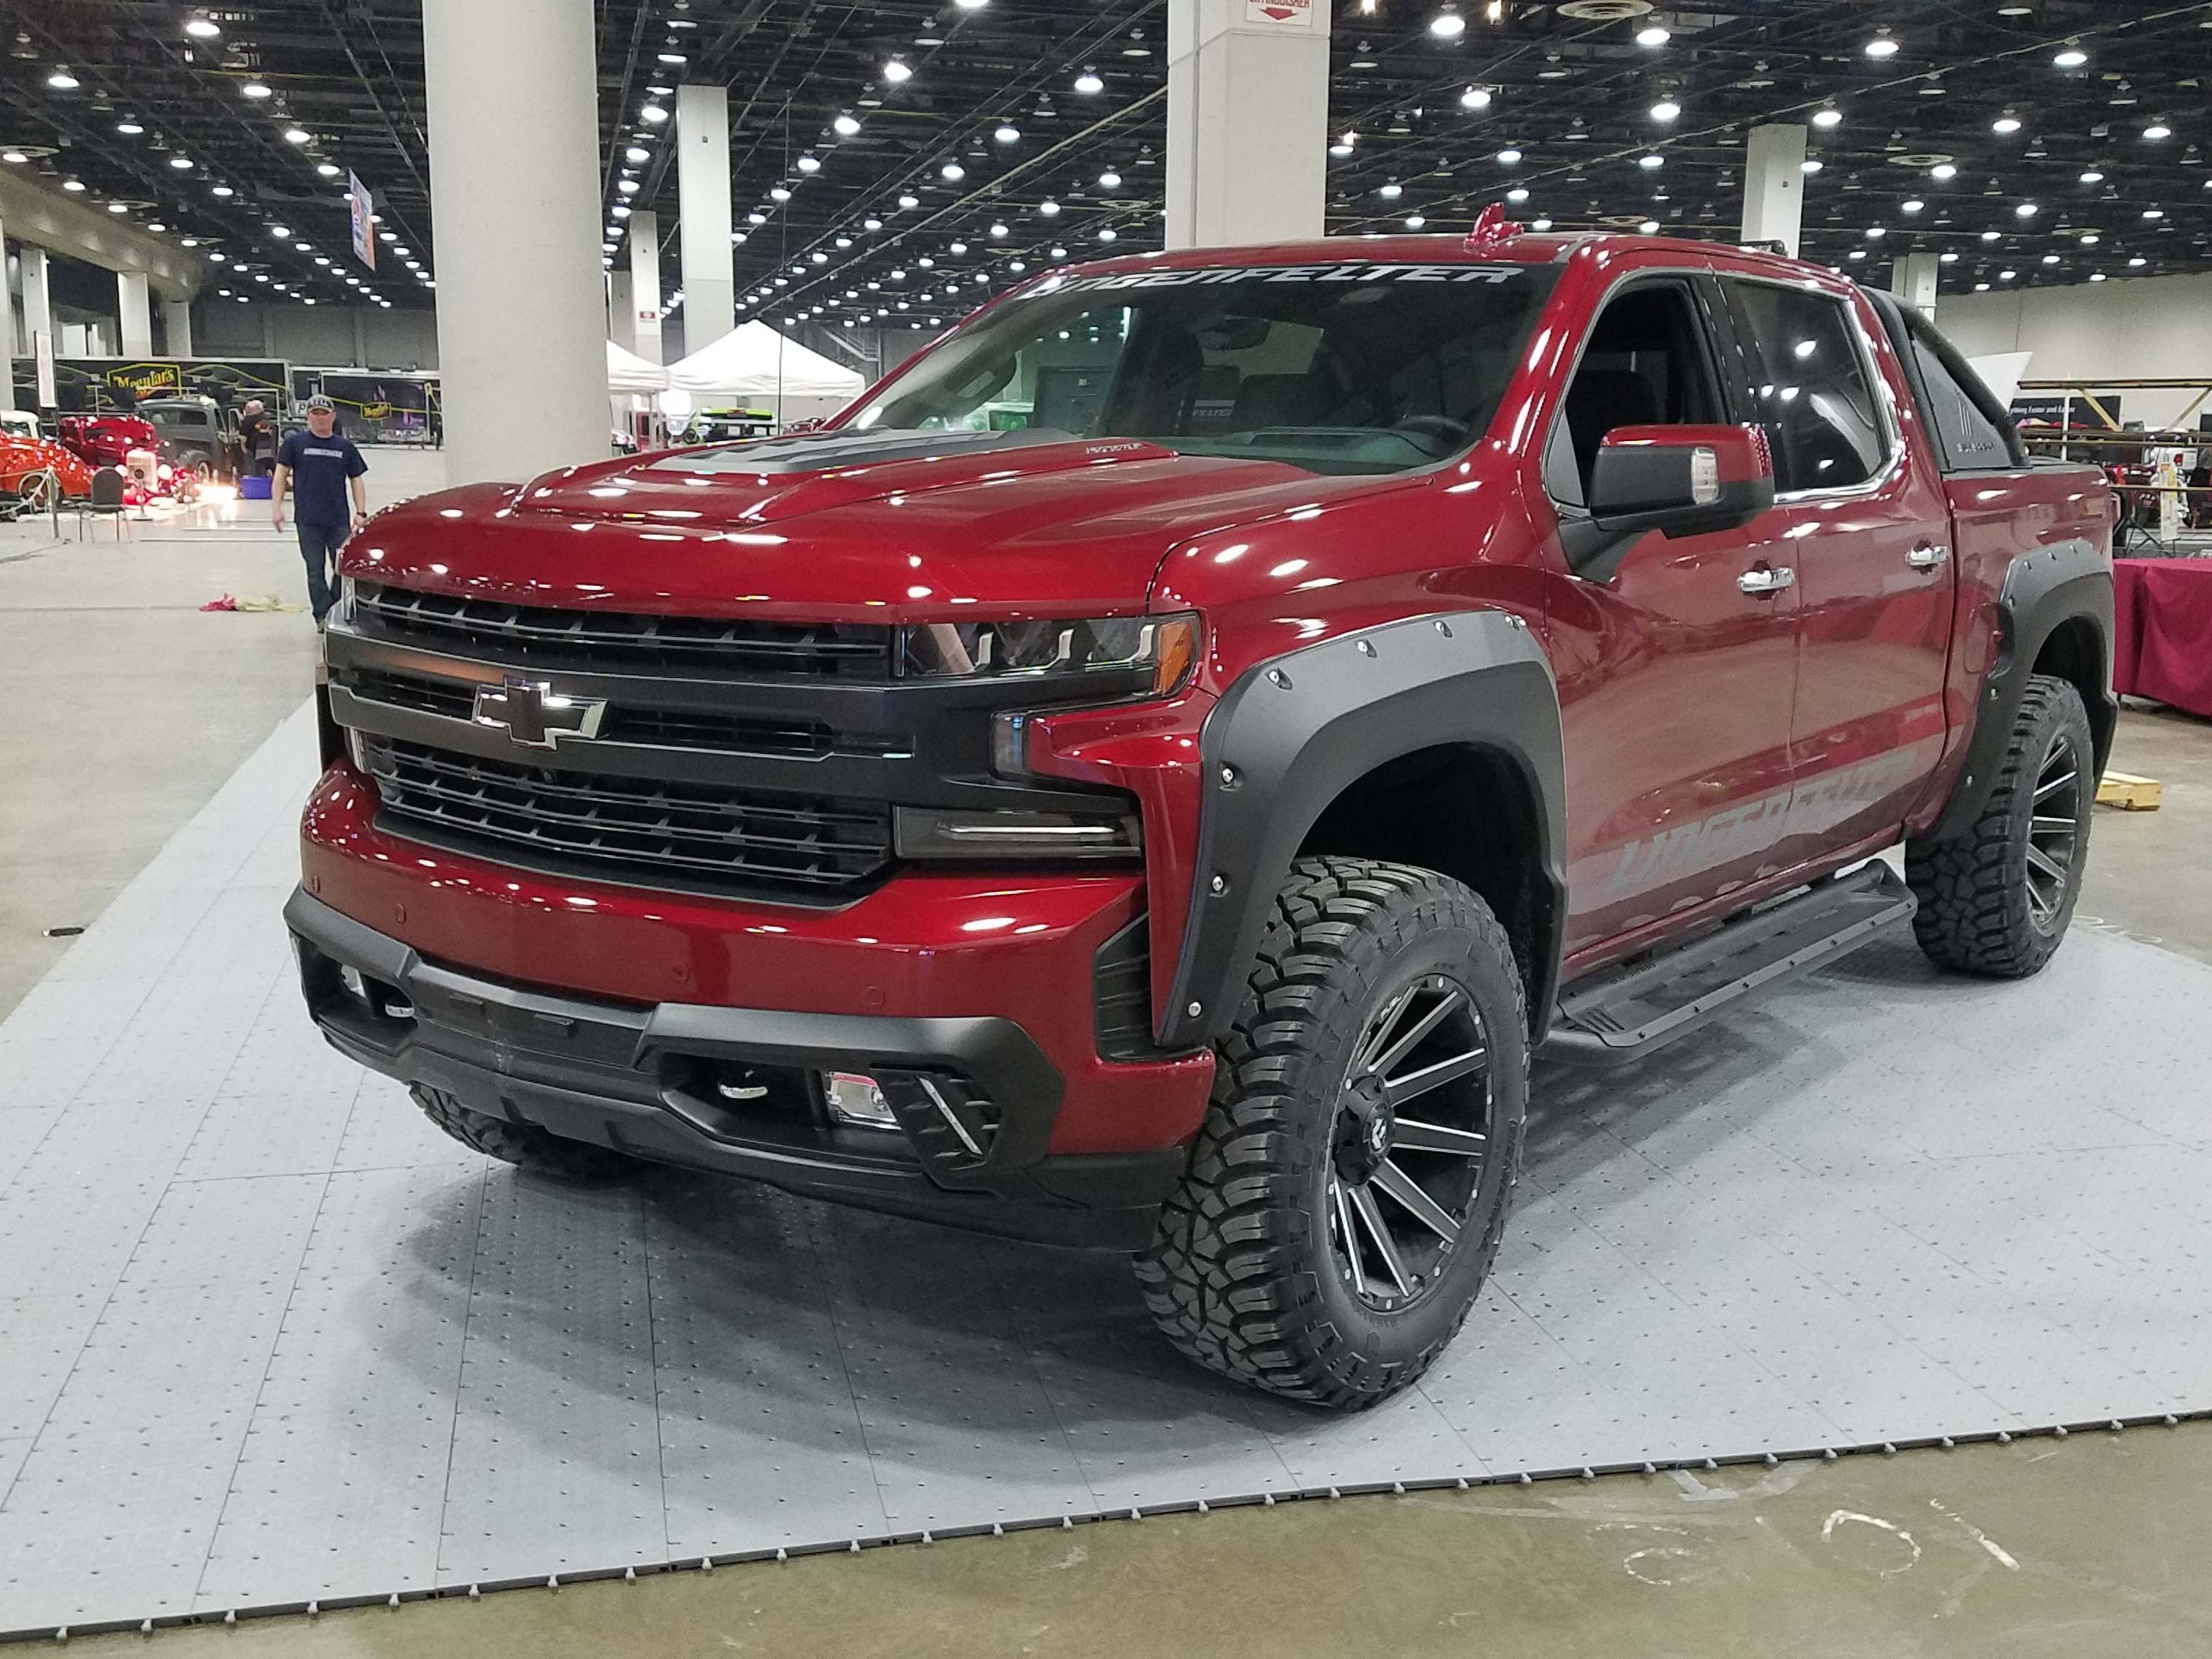 Mixing with the custom rods on the Autoramam floor are modern mod shops like Lingenfelter Engineering, which is showing off its new, modified, 2019 Chevy Silverado pickup. Vroom vroom.